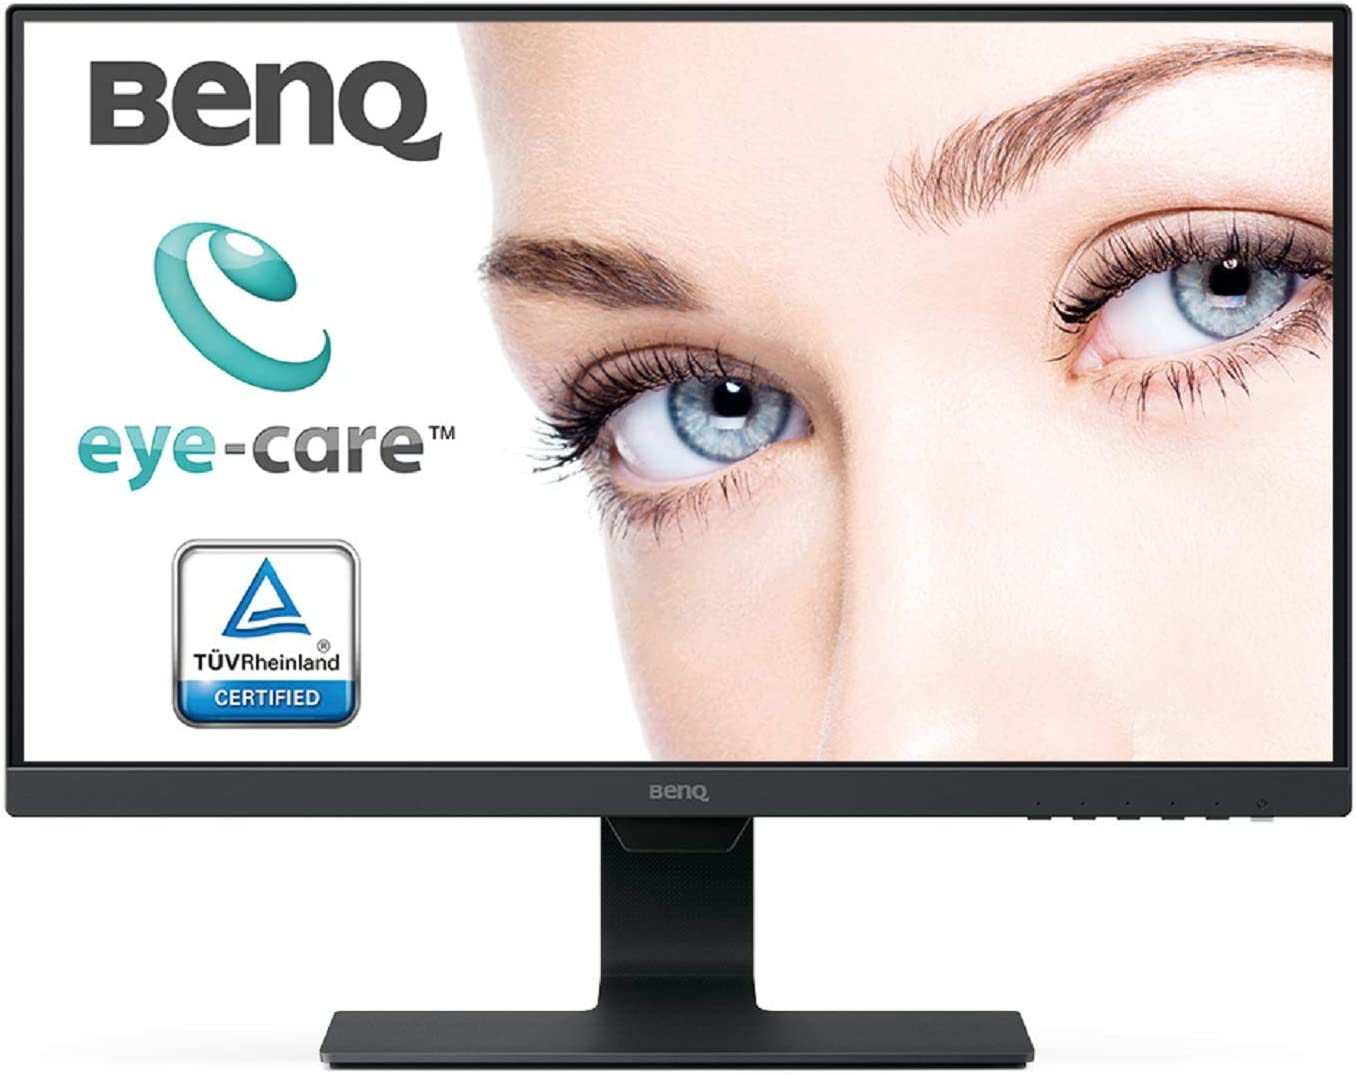 BenQ GW2480 Monitor LED Eye-Care da 24 Pollici, Full HD 1920 x 1080, Panello IPS & Corsair Vengeance LPX Memorie XMP 2.0 di alte prestazioni per Desktop a Elevate Prestazioni, 16 GB